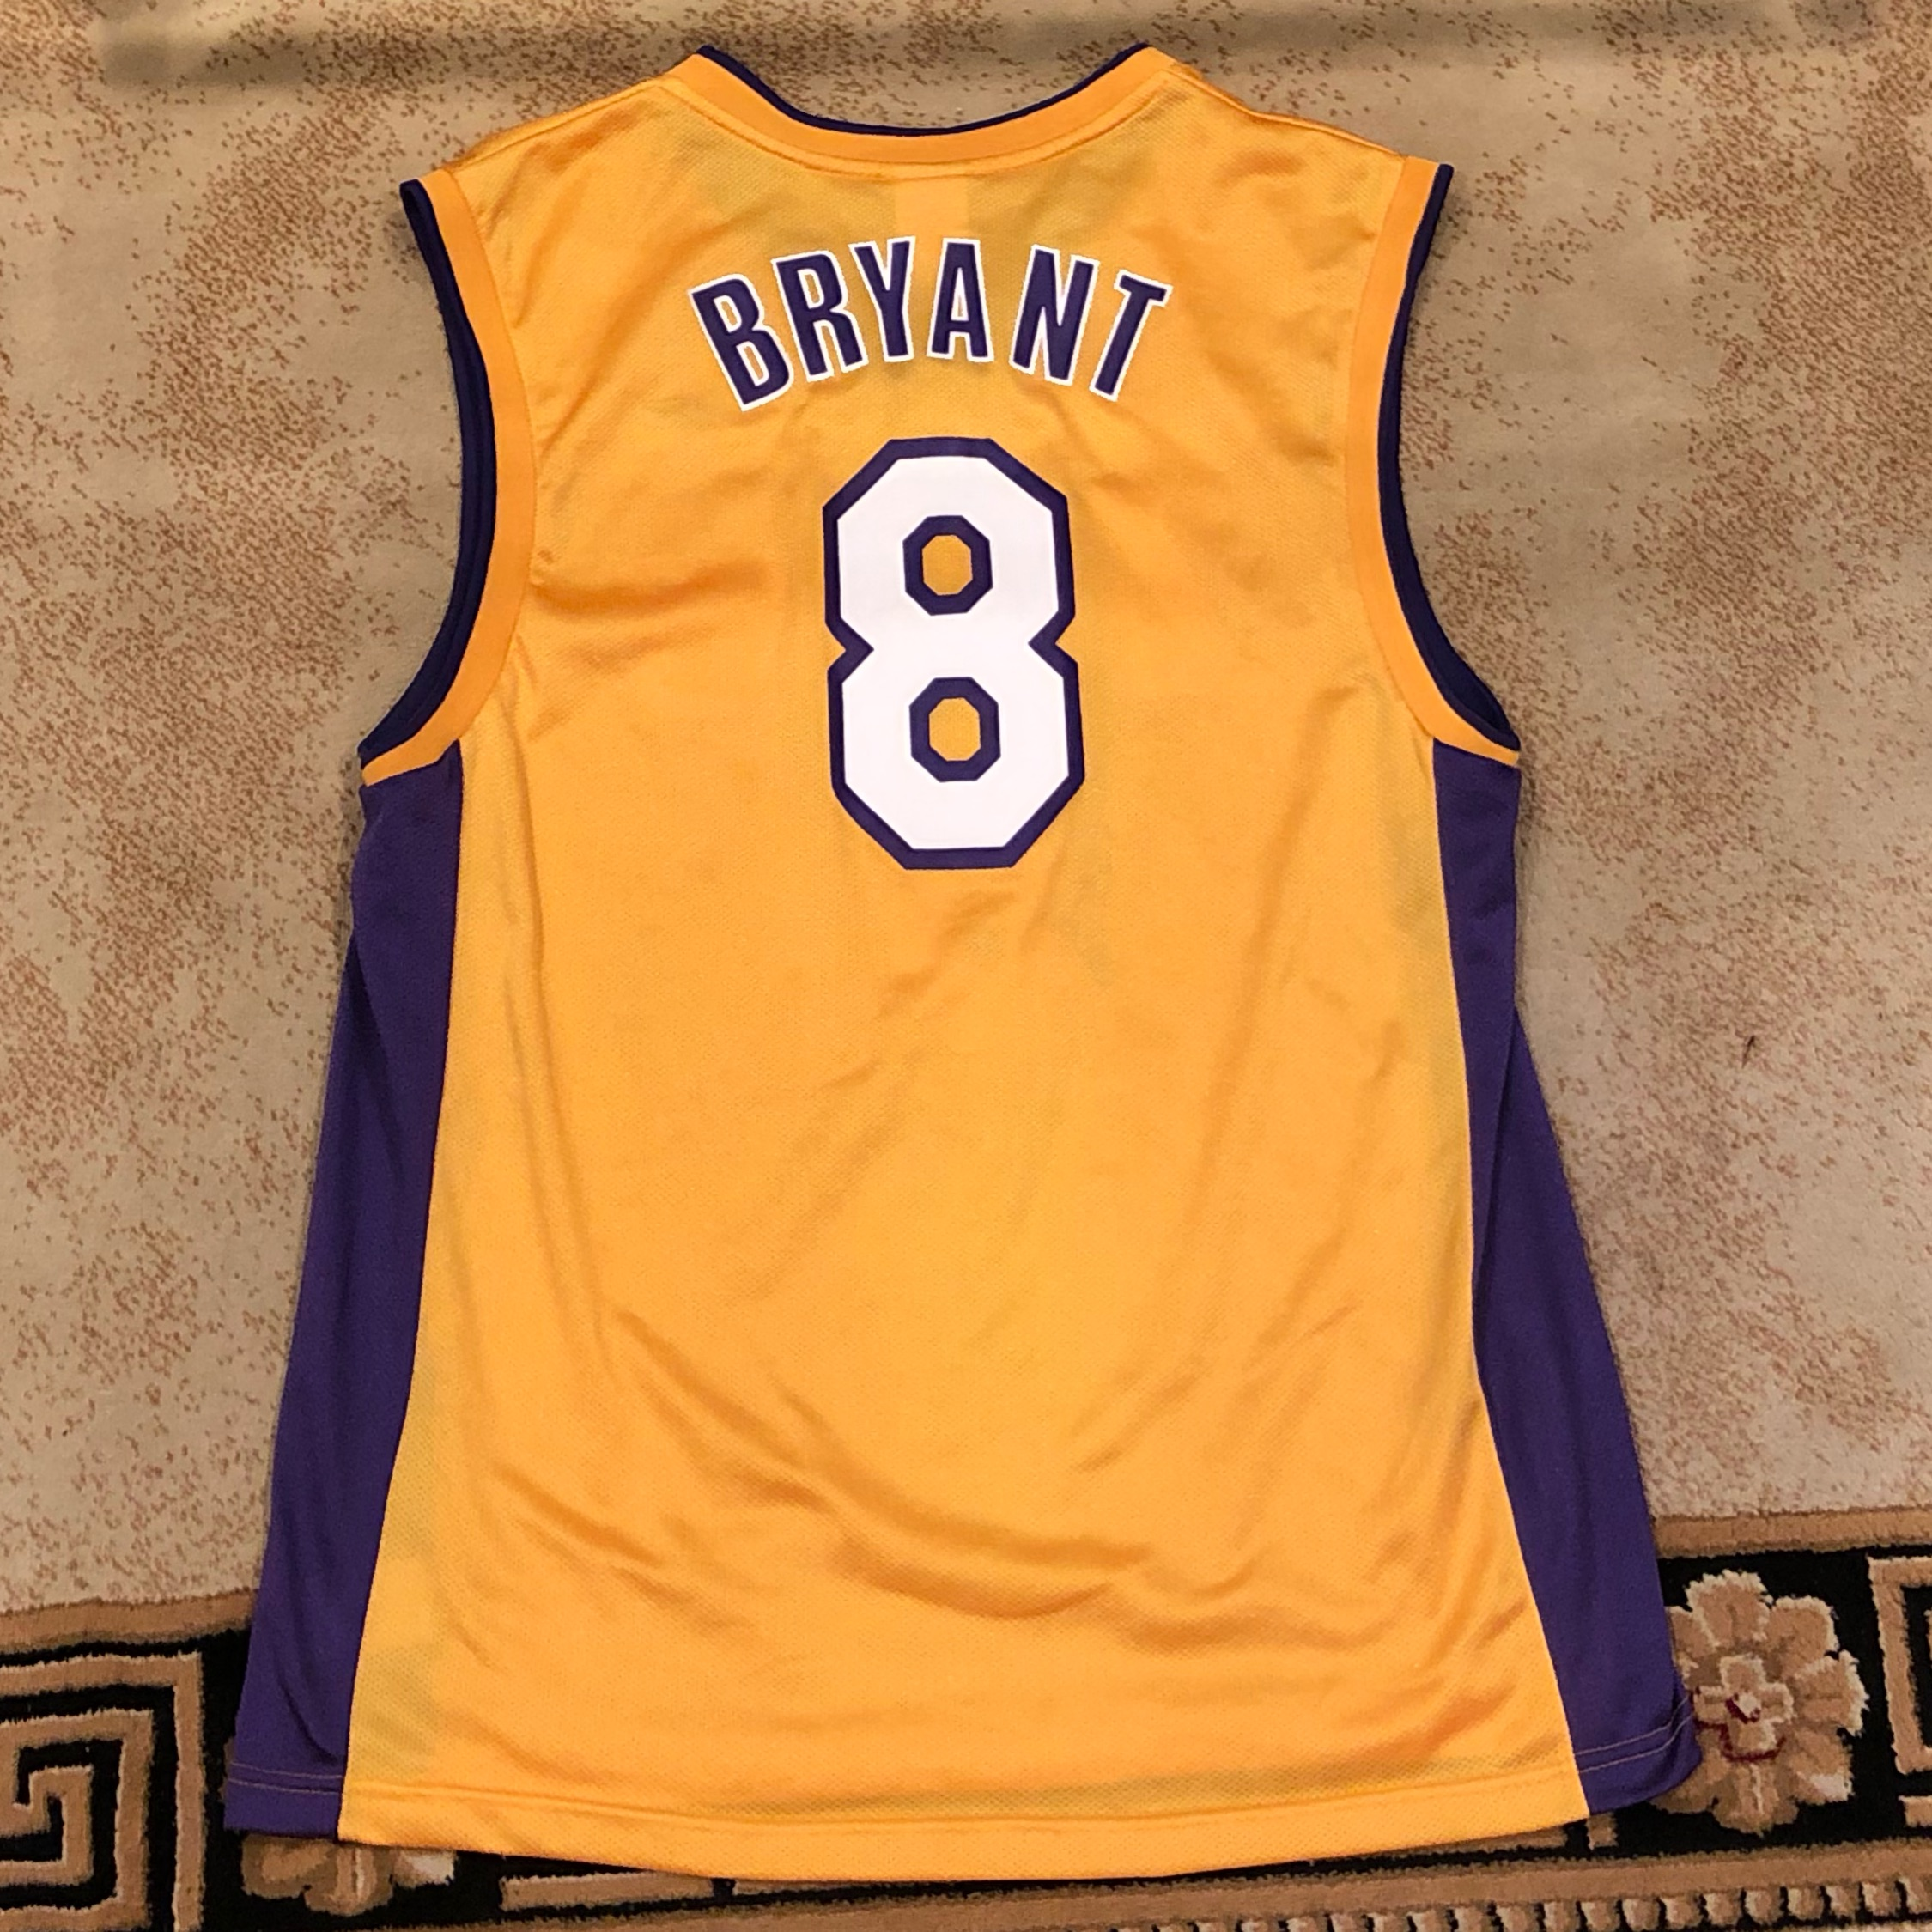 Kobe 8 Lakers Jersey Sale Online, UP TO 65% OFF